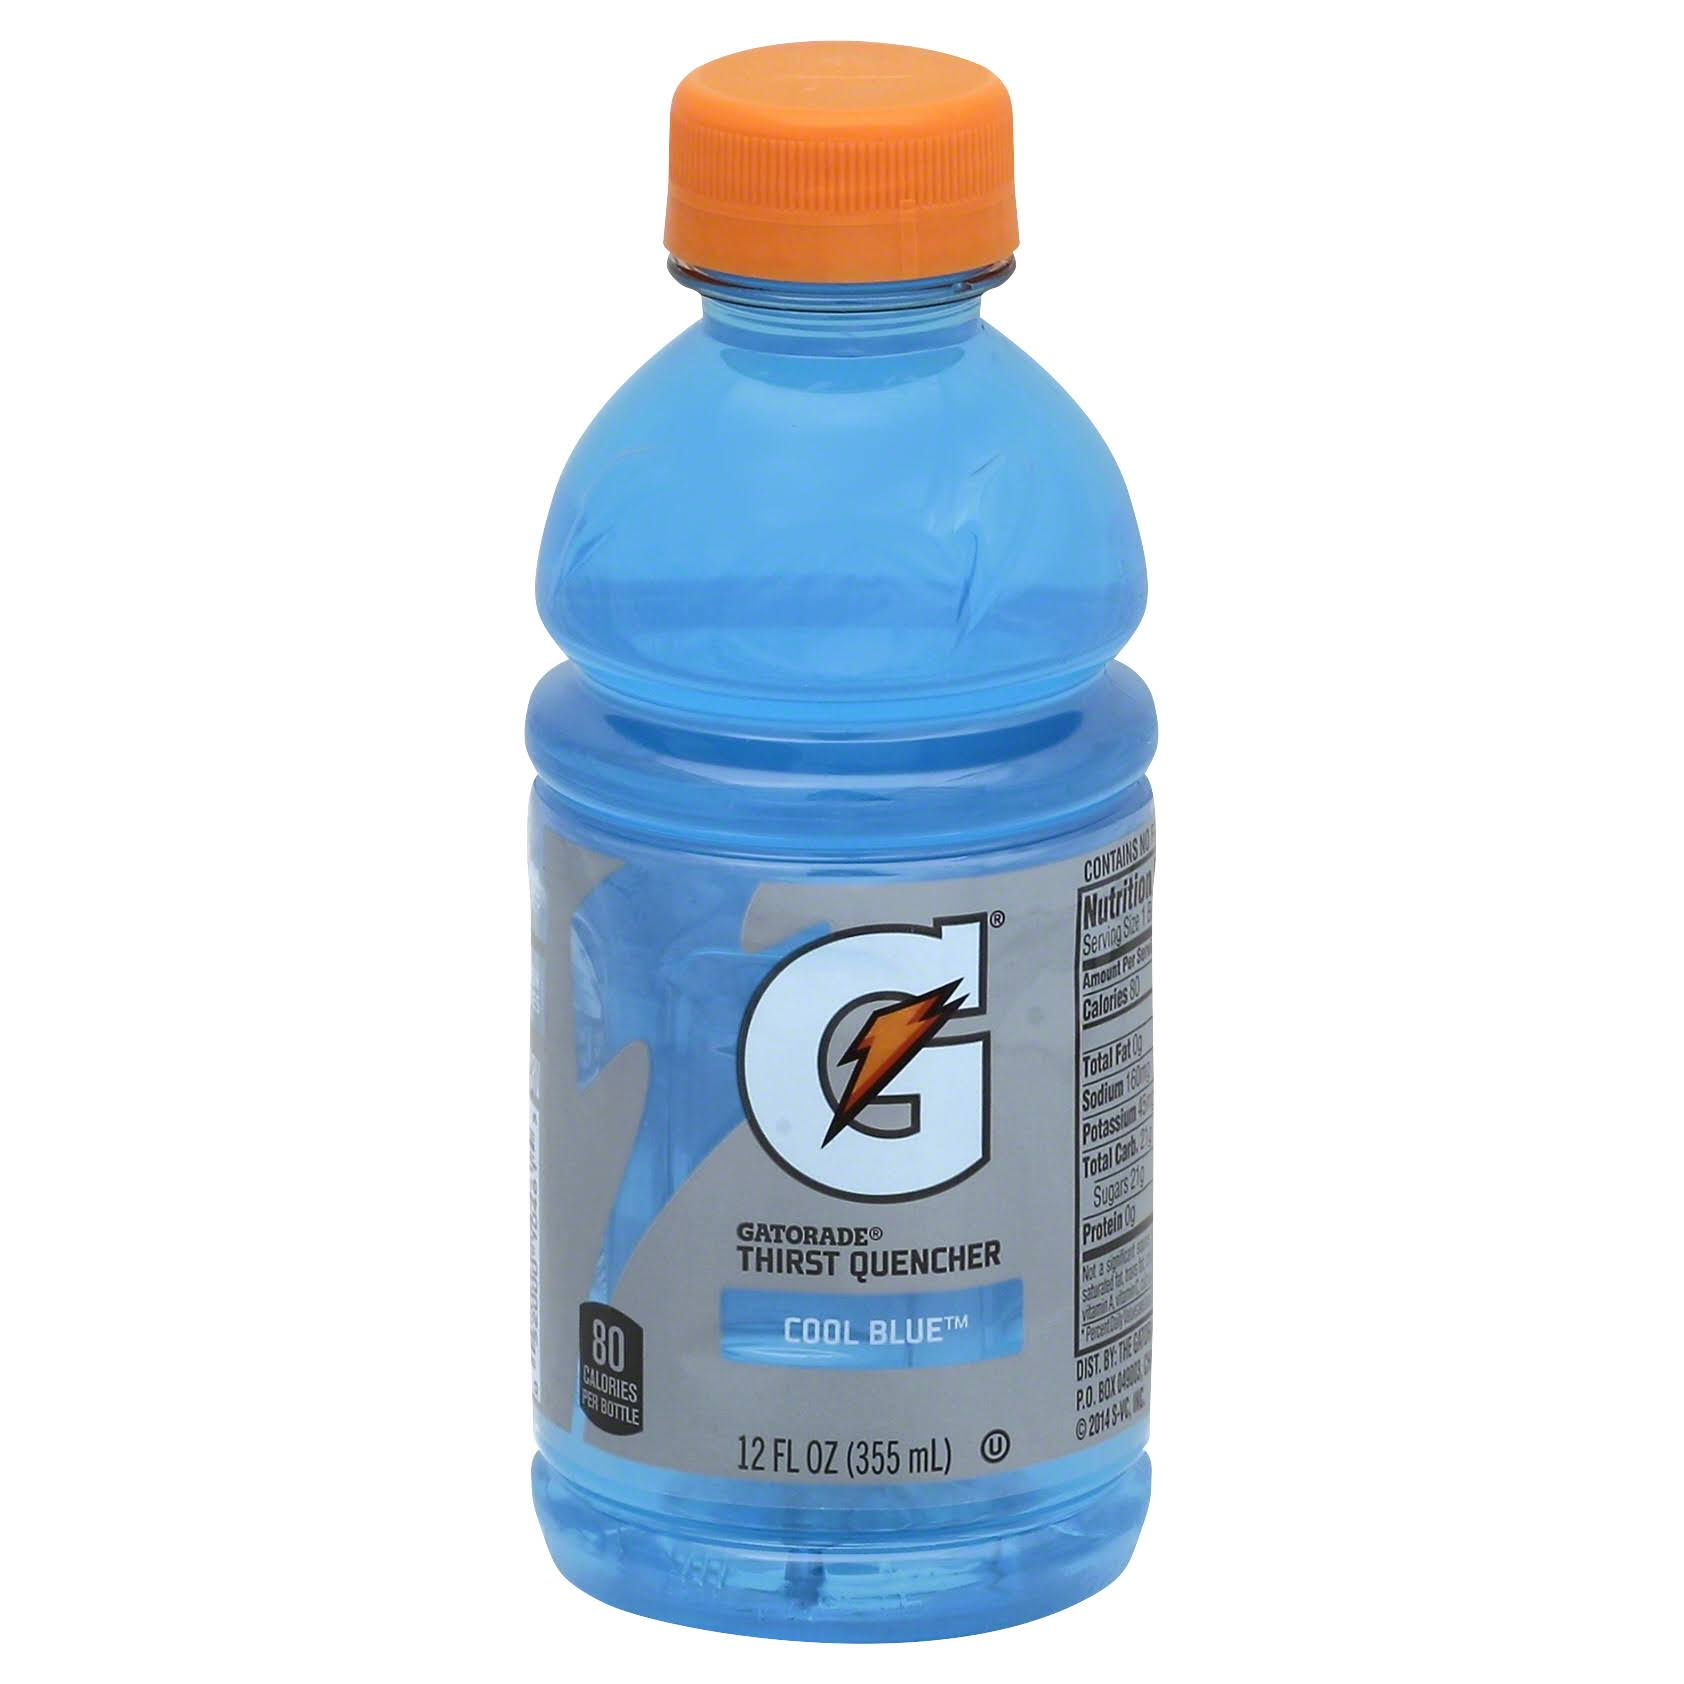 Gatorade G Series Thirst Quencher, Perform, Cool Blue - 12 fl oz